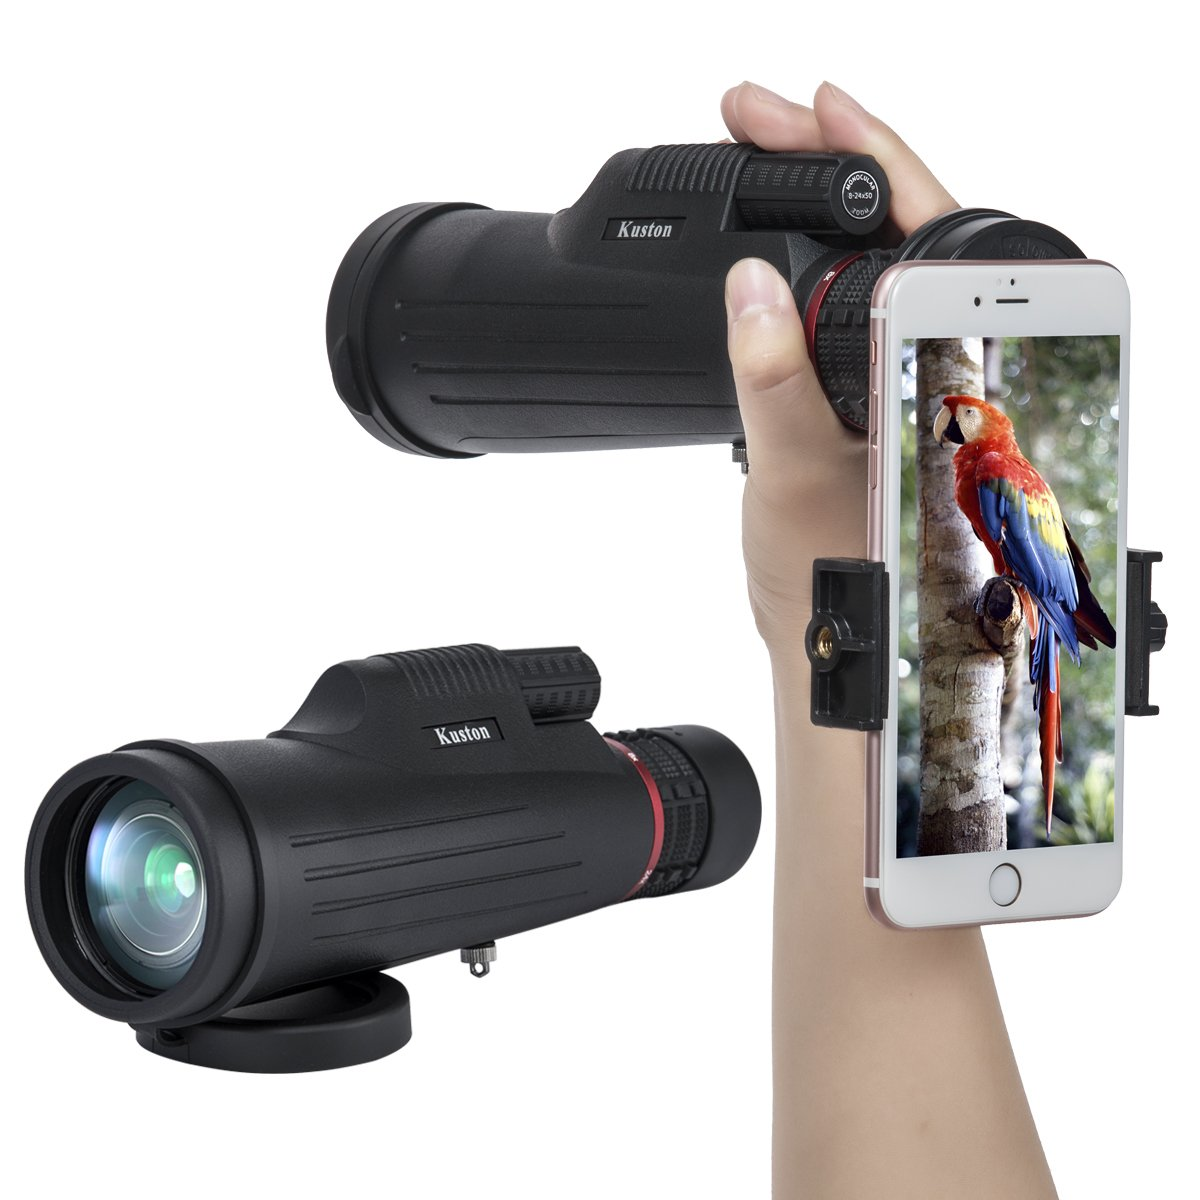 Kuston Monocular Telescope,24x50 High Power Monocular Scope Waterproof Monoculars for Smartphone for Bird Watching